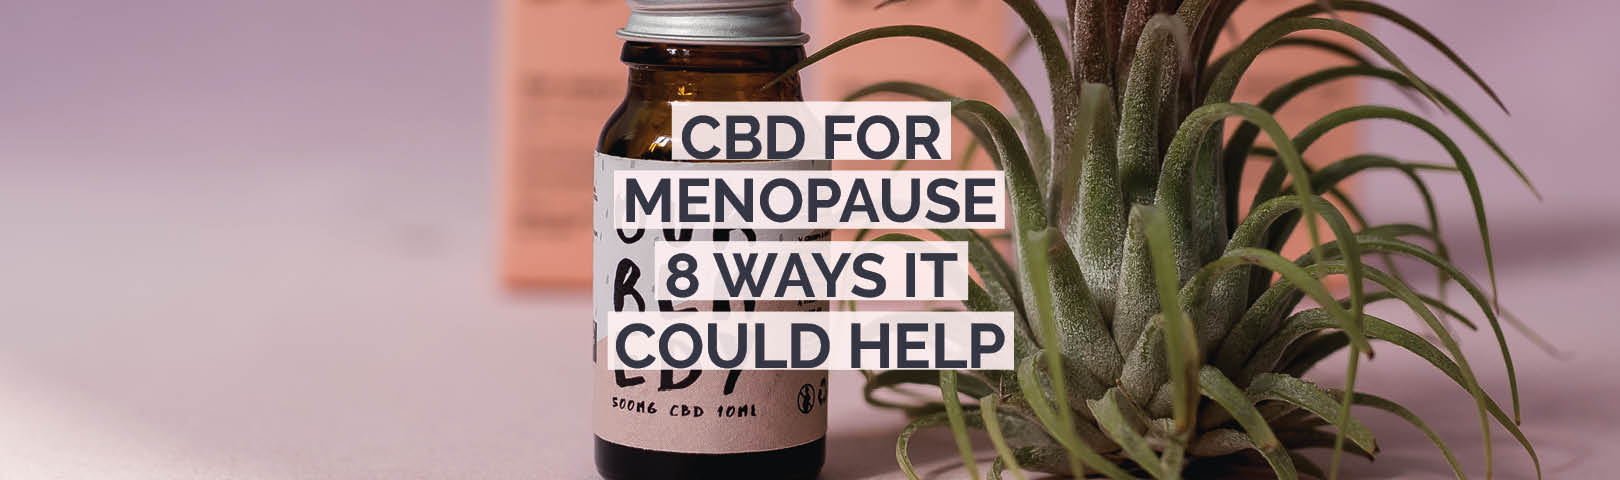 we take a look at how cbd might help with menopause symptoms